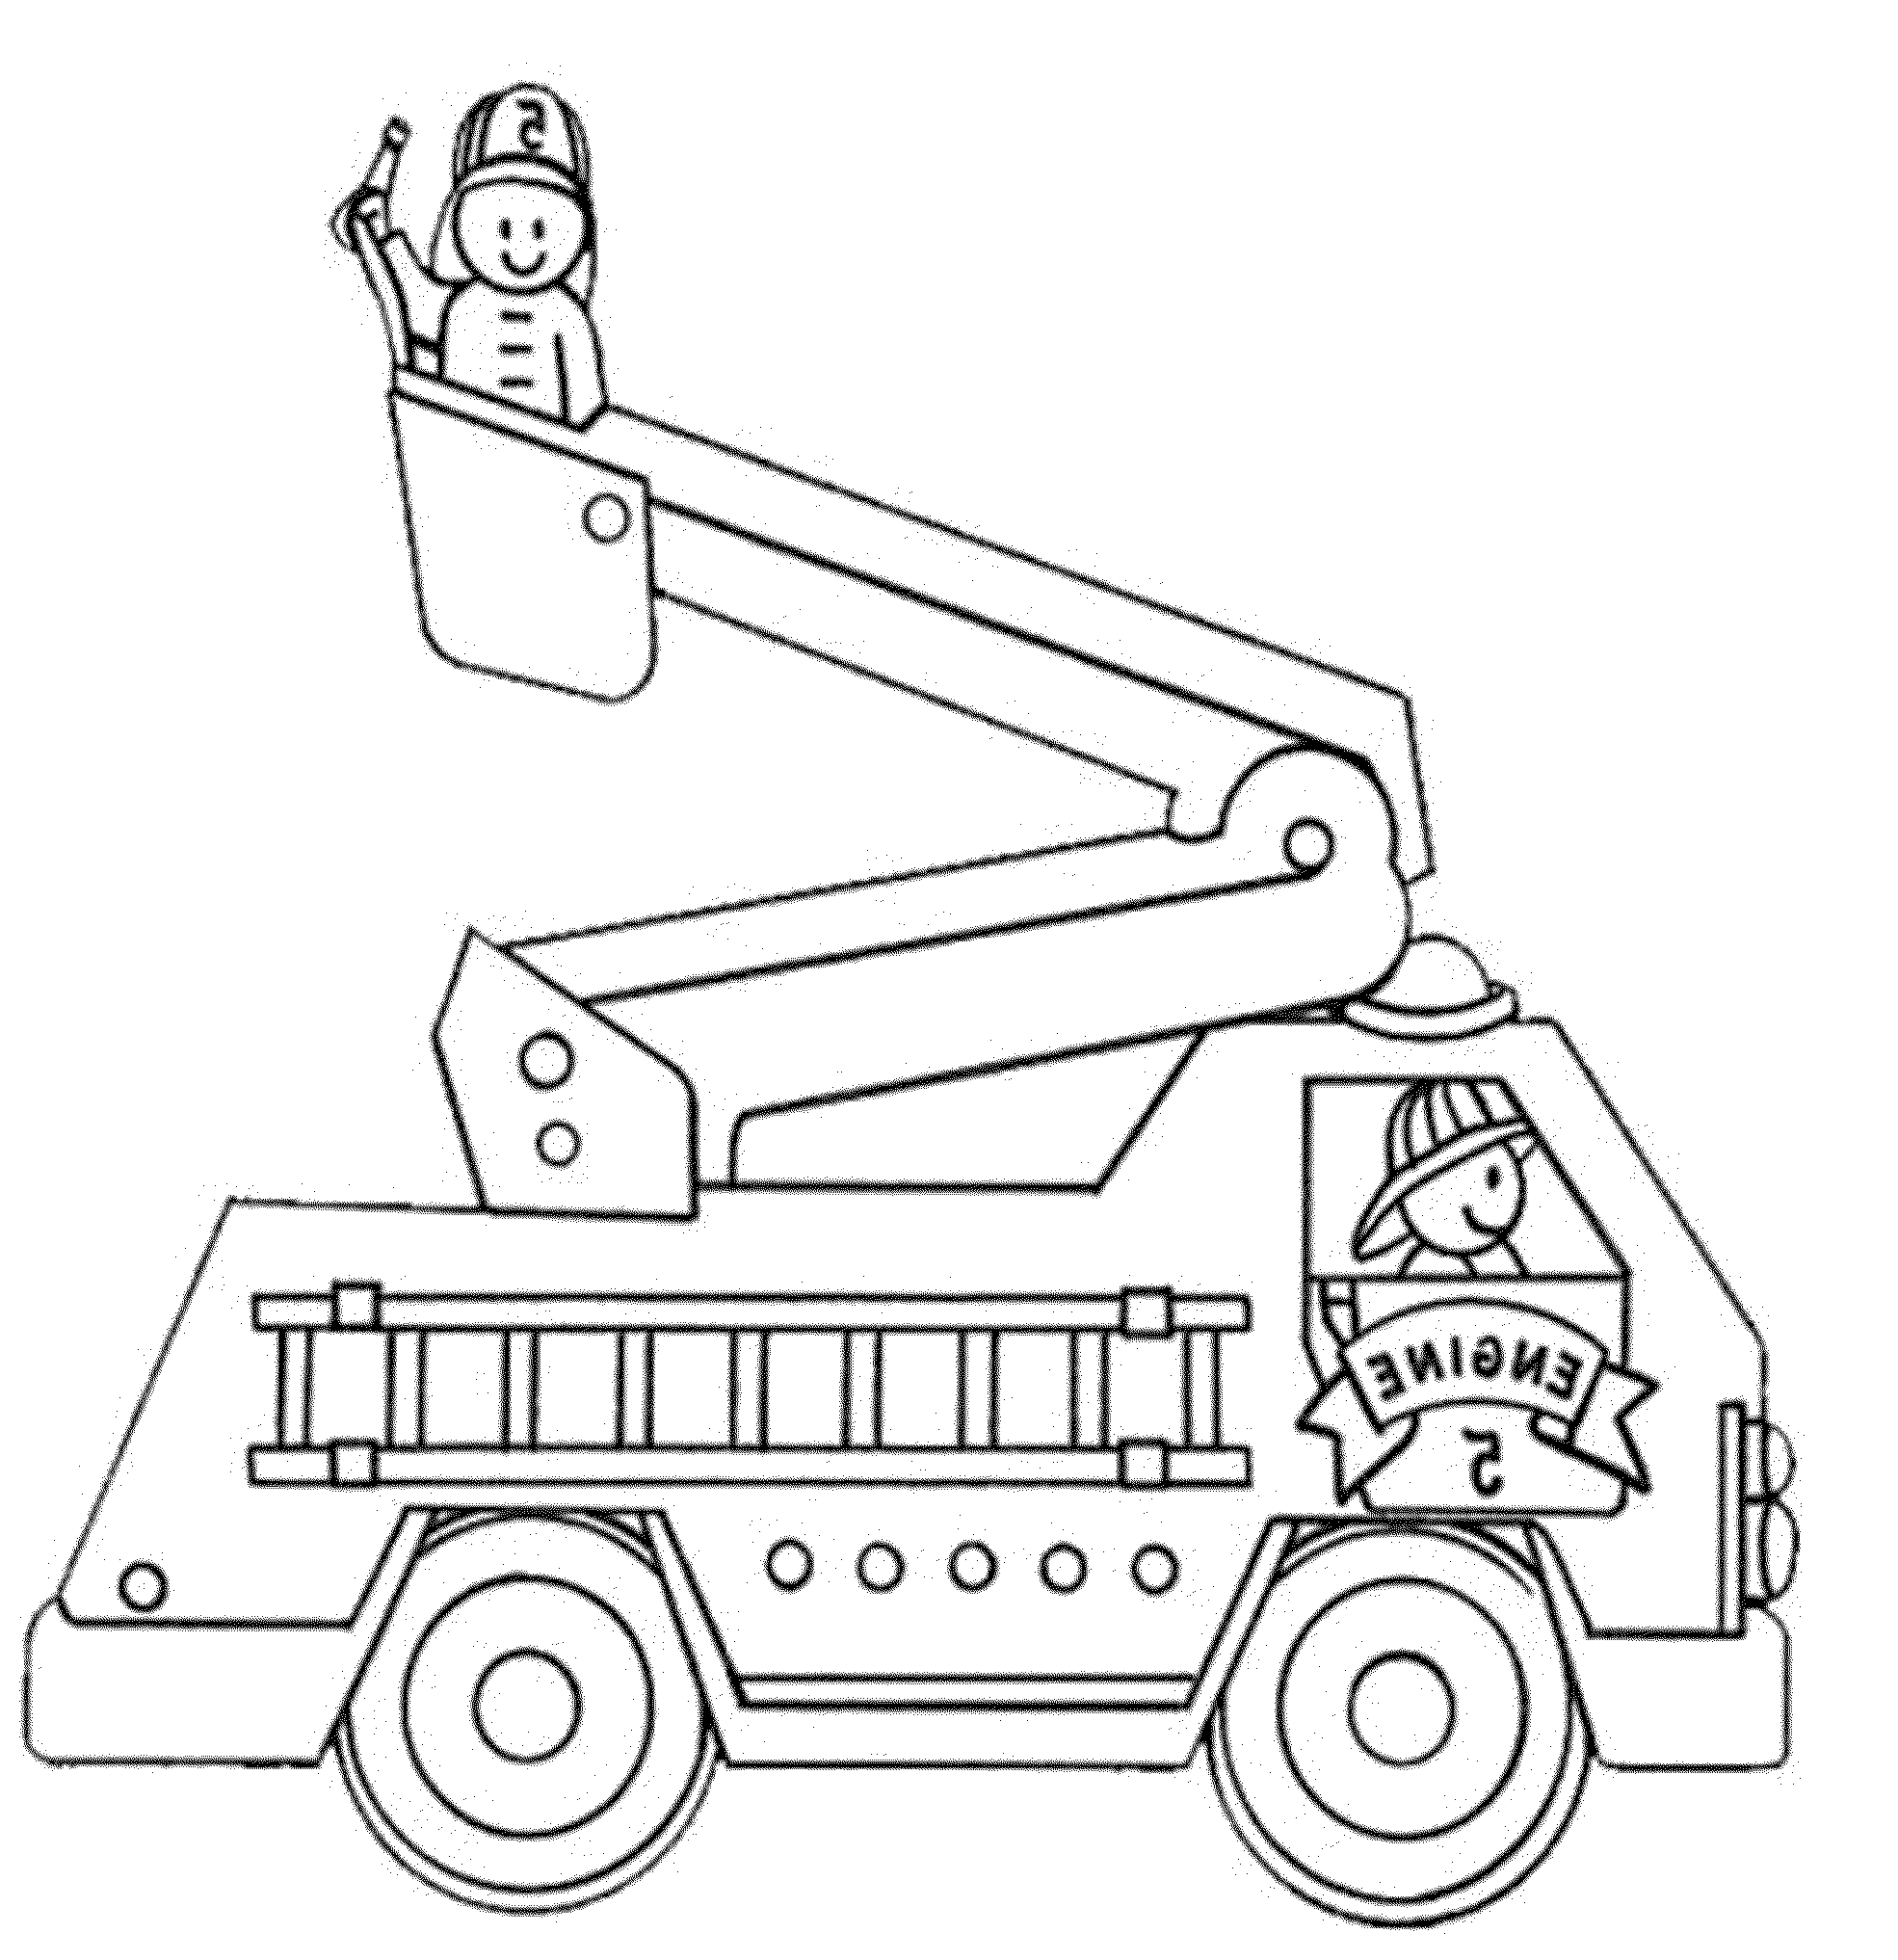 printable fire truck coloring page - print download educational fire truck coloring pages